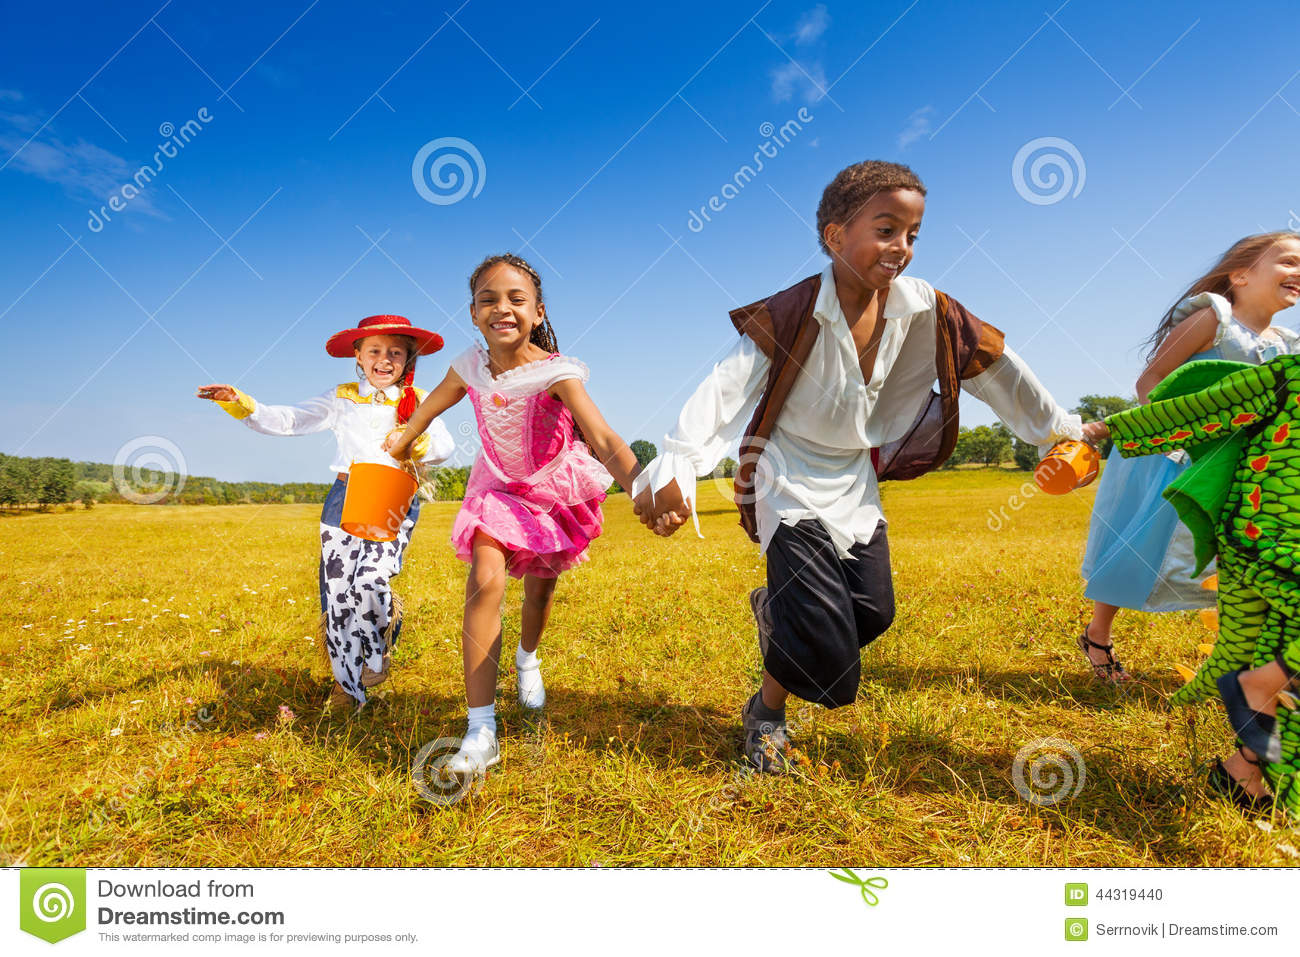 Friend Group Halloween Costumes Kids.Group Of Kids Running In Halloween Costumes Stock Photo